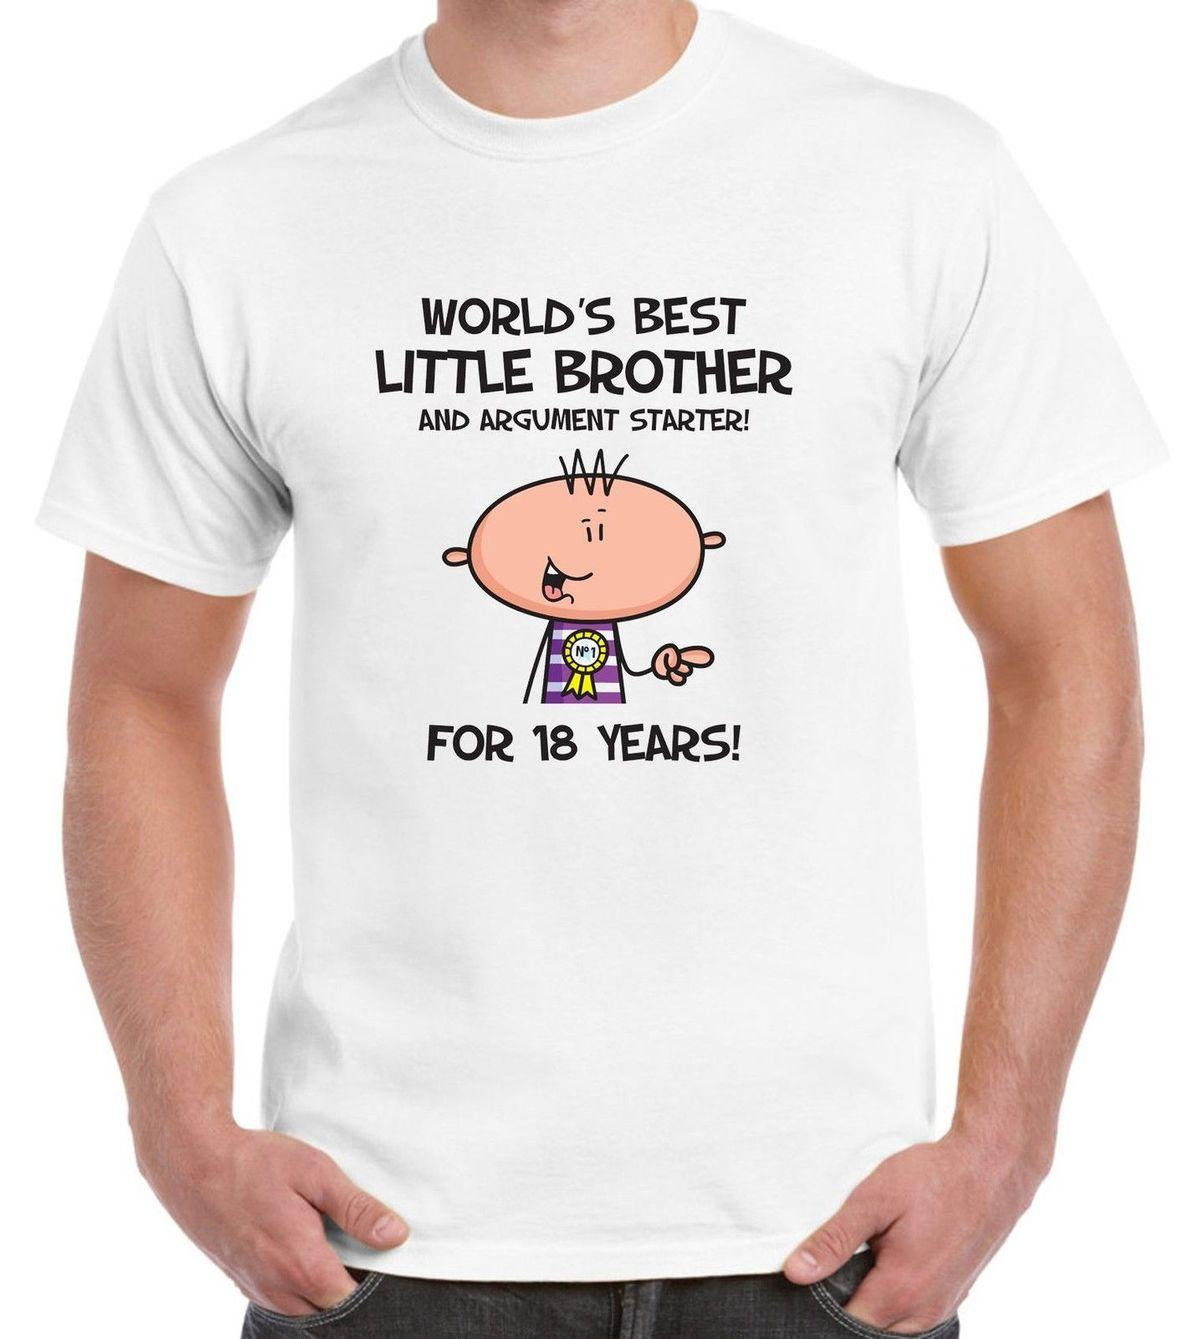 Worlds Best Little Brother MenS 18th Birthday Present T Shirt Gift Cool Shirts For Men Cheap Tee From Crazytomorrow 1158